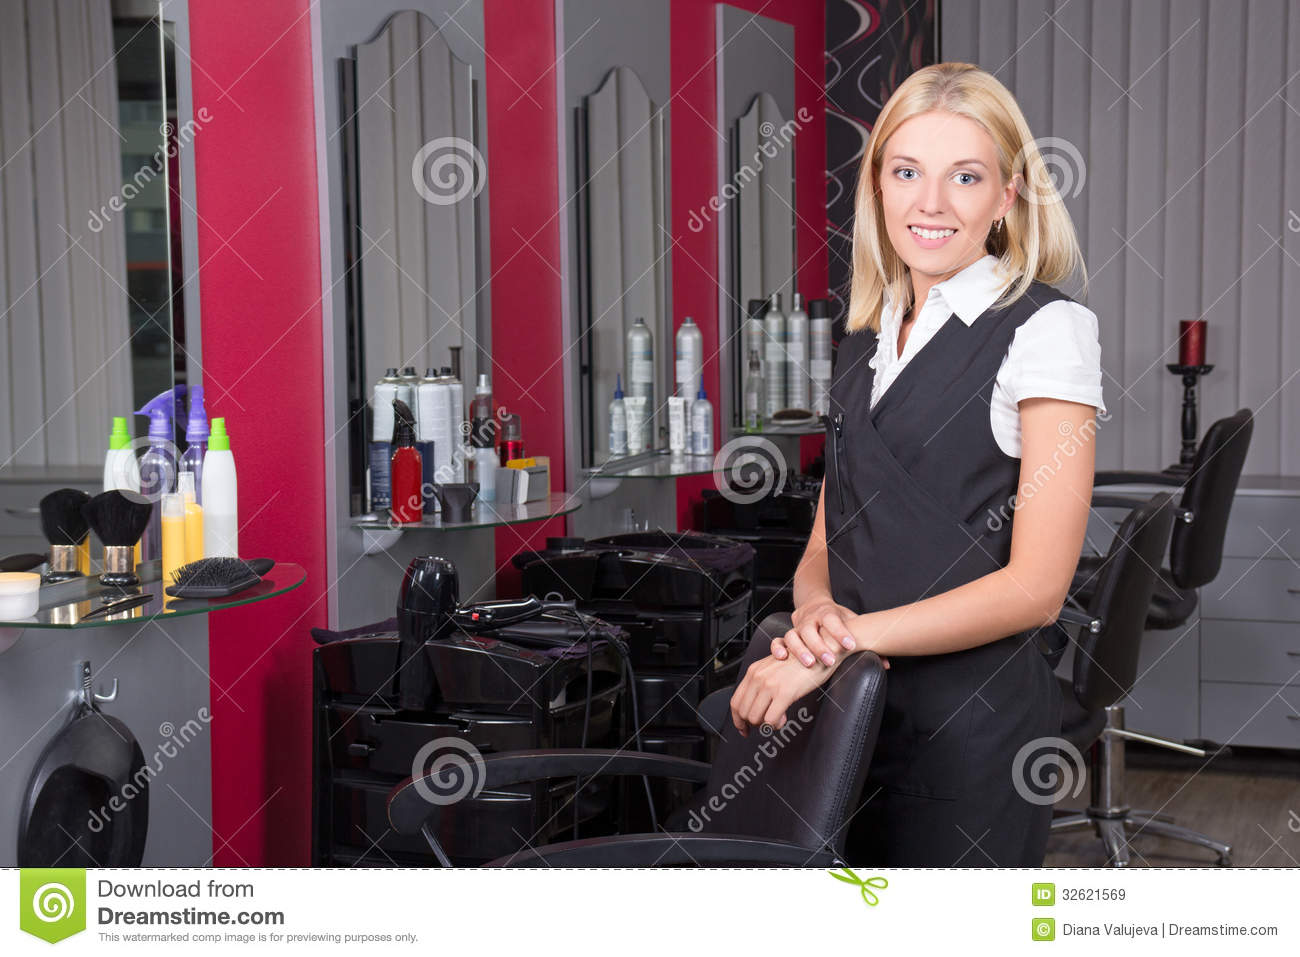 Professional Hairdresser : Professional Hairdresser In Beauty Salon Royalty Free Stock Images ...